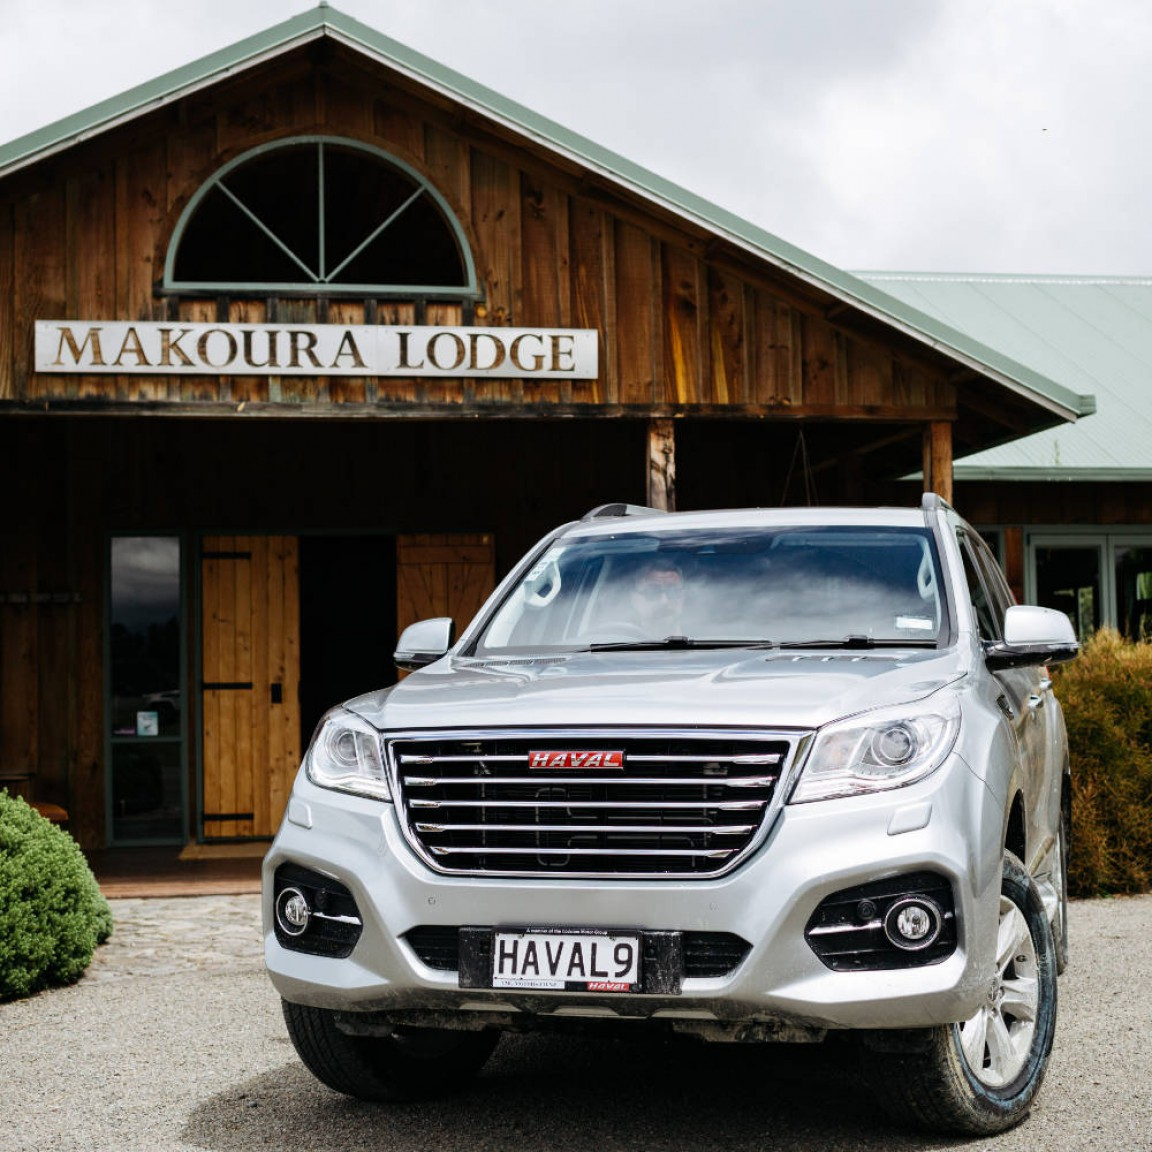 A_Haval H9 2019